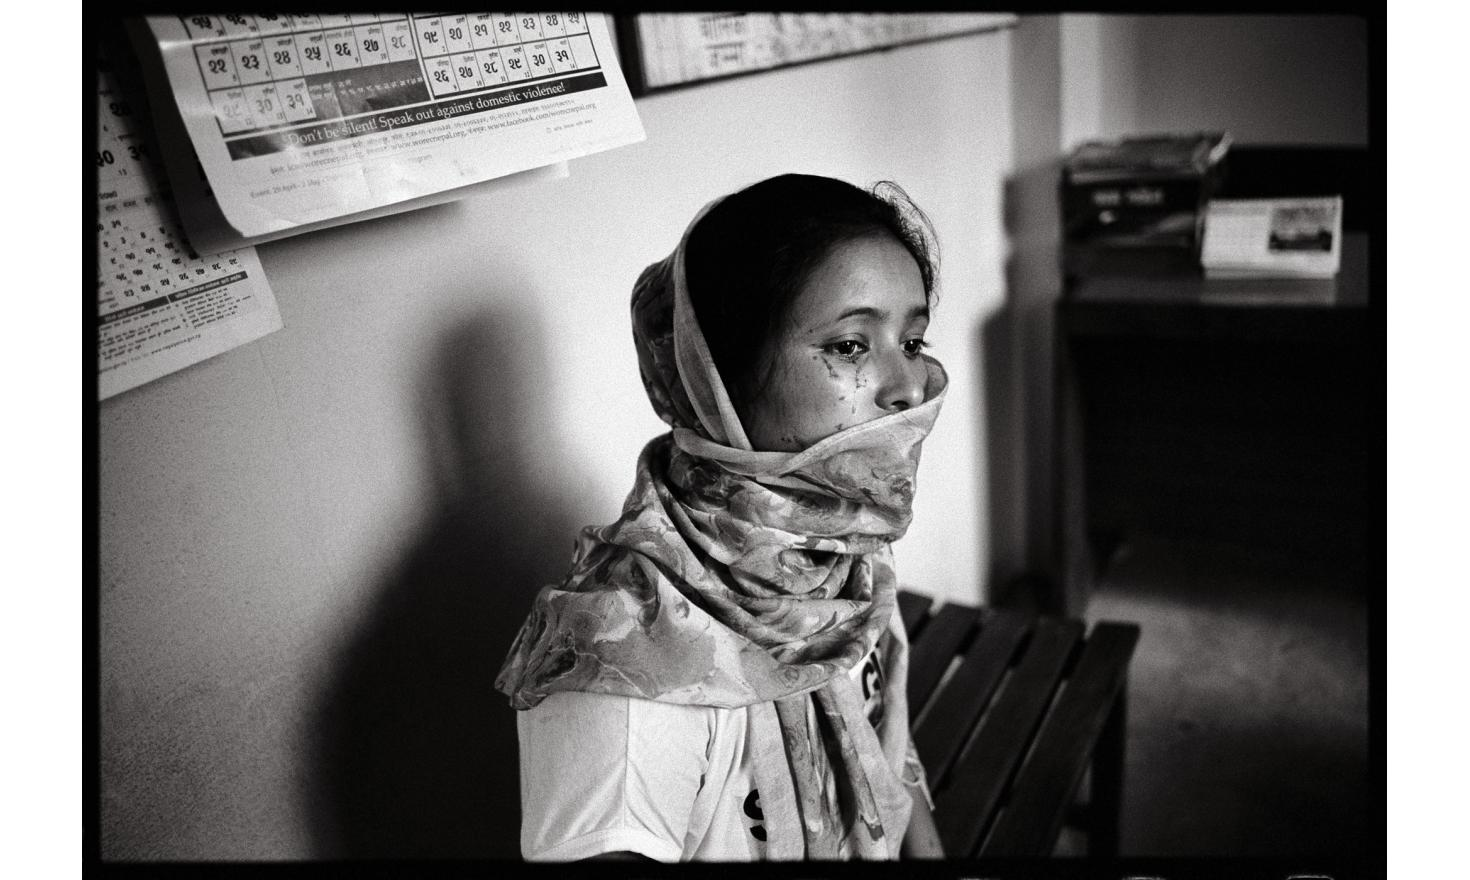 Kalimati, Kathmandu, Nepal. Nara Maya, 21, met the fiancé her family had chosen for her only 2 weeks before getting married. It was 3 months ago. Since then, she's been beaten up every day. Nara Maya has decided to get divorced.